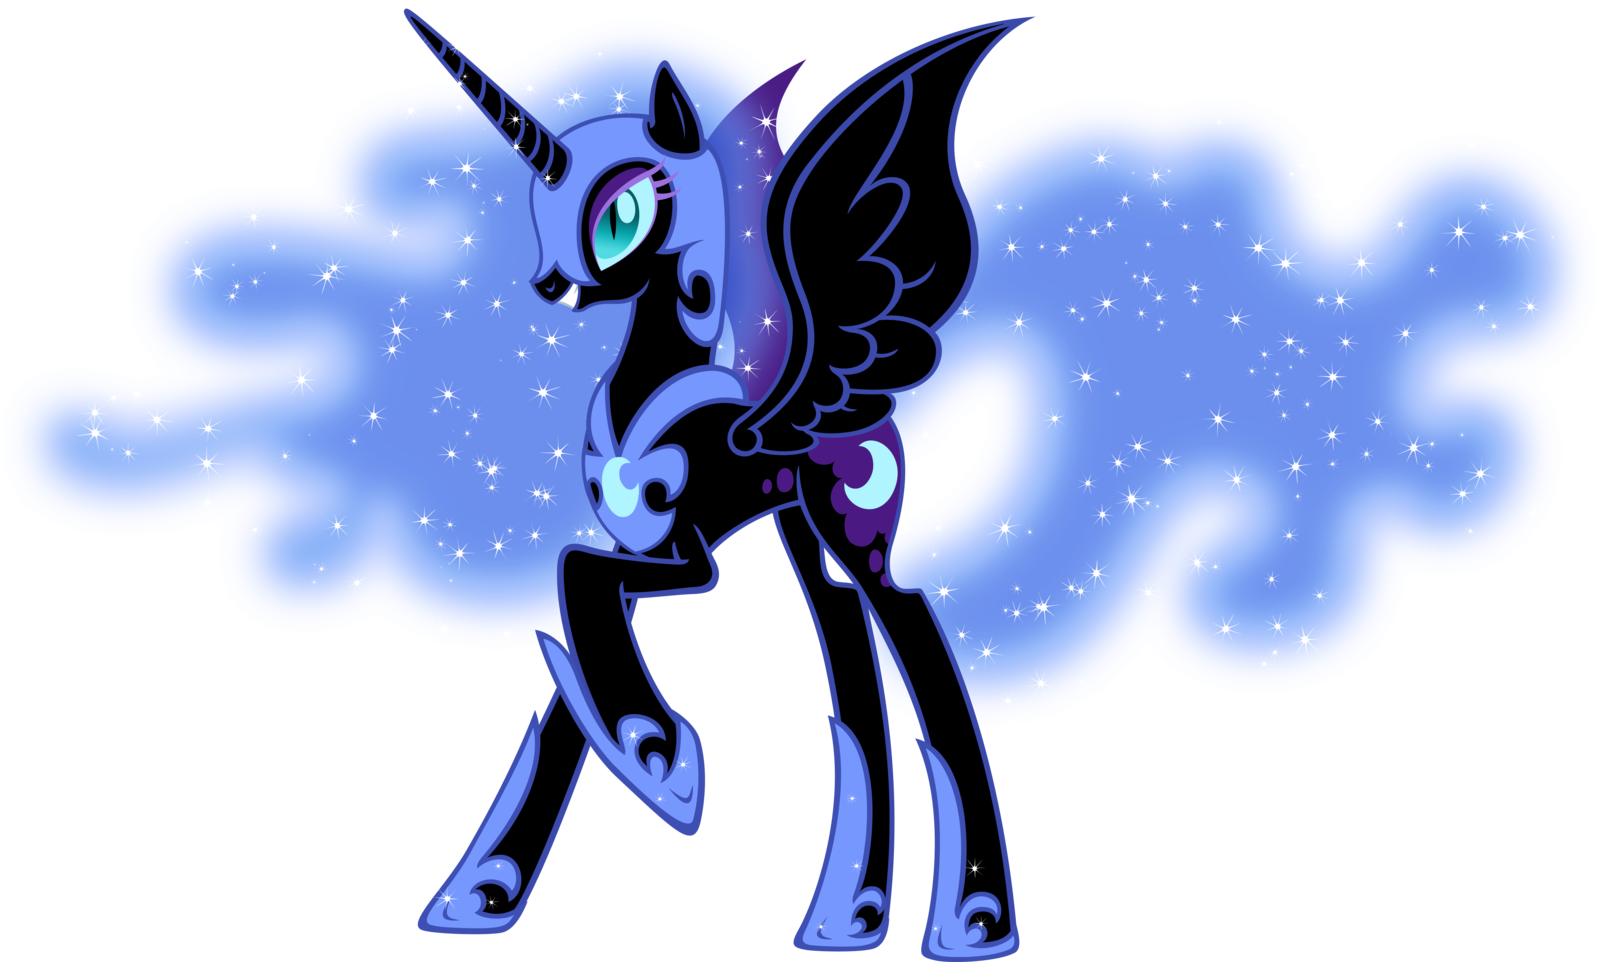 Nightmare_moon_by_moongazeponies-d3jw0ny